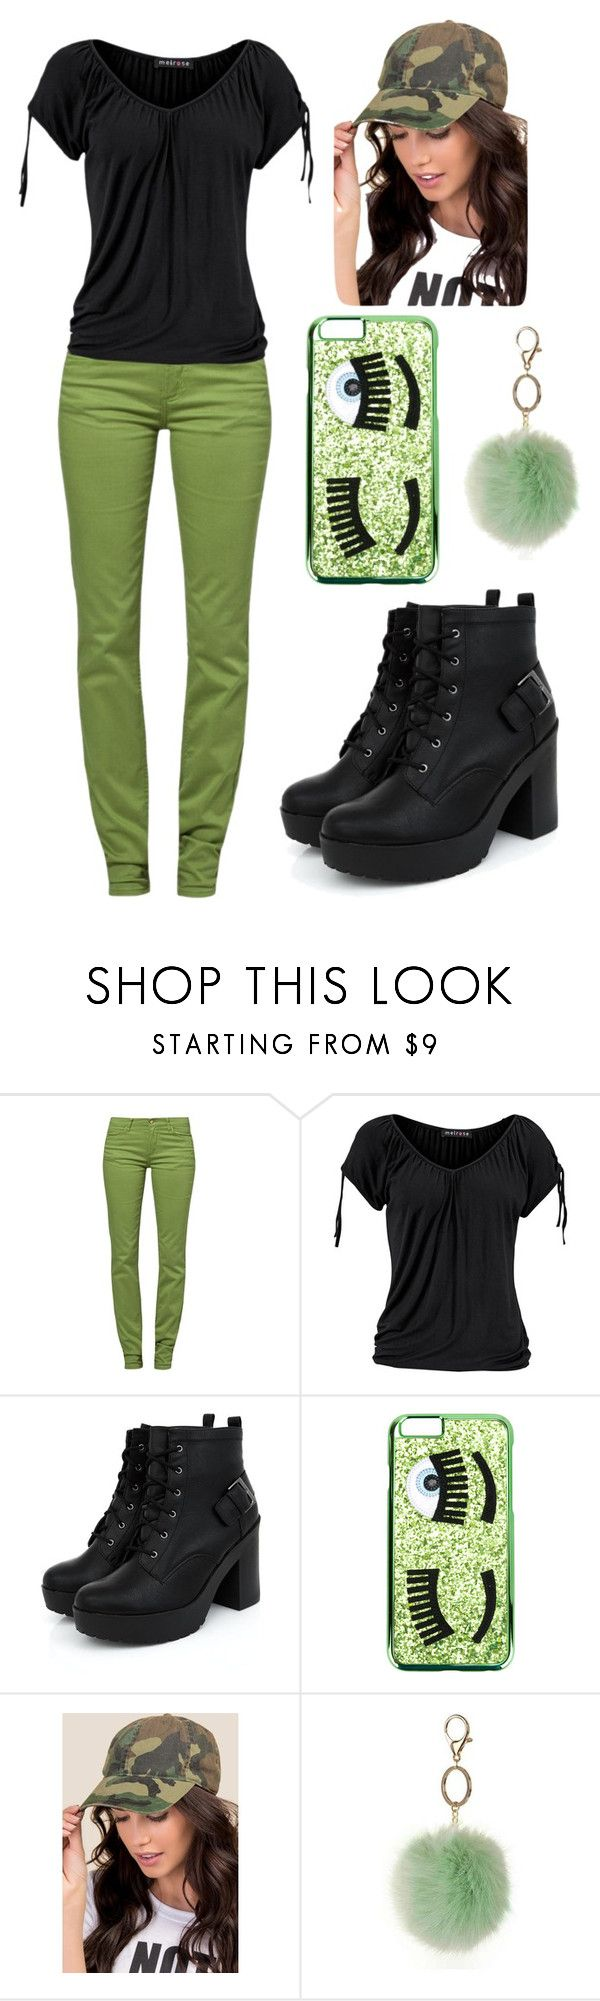 """💚My Style💚"" by officially-mya ❤ liked on Polyvore featuring Monkee Genes, Chiara Ferragni, Francesca's and Dorothy Perkins"